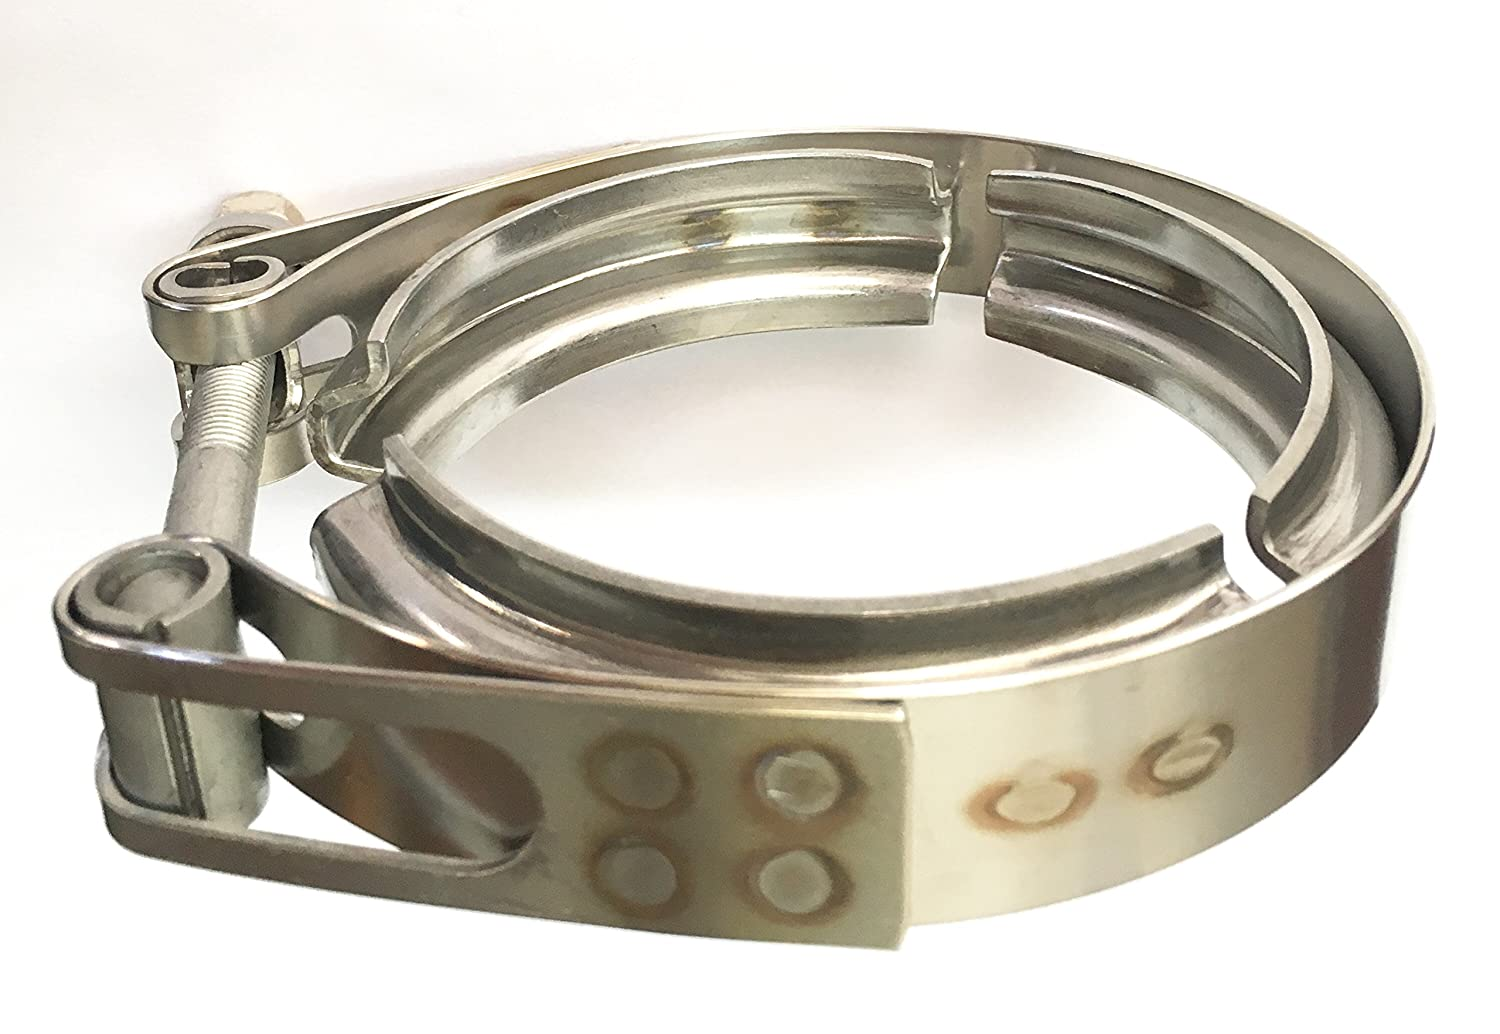 Ticon Industries - 3' Stainless Steel V-Band Clamp (qty1) - 119-07600-0000